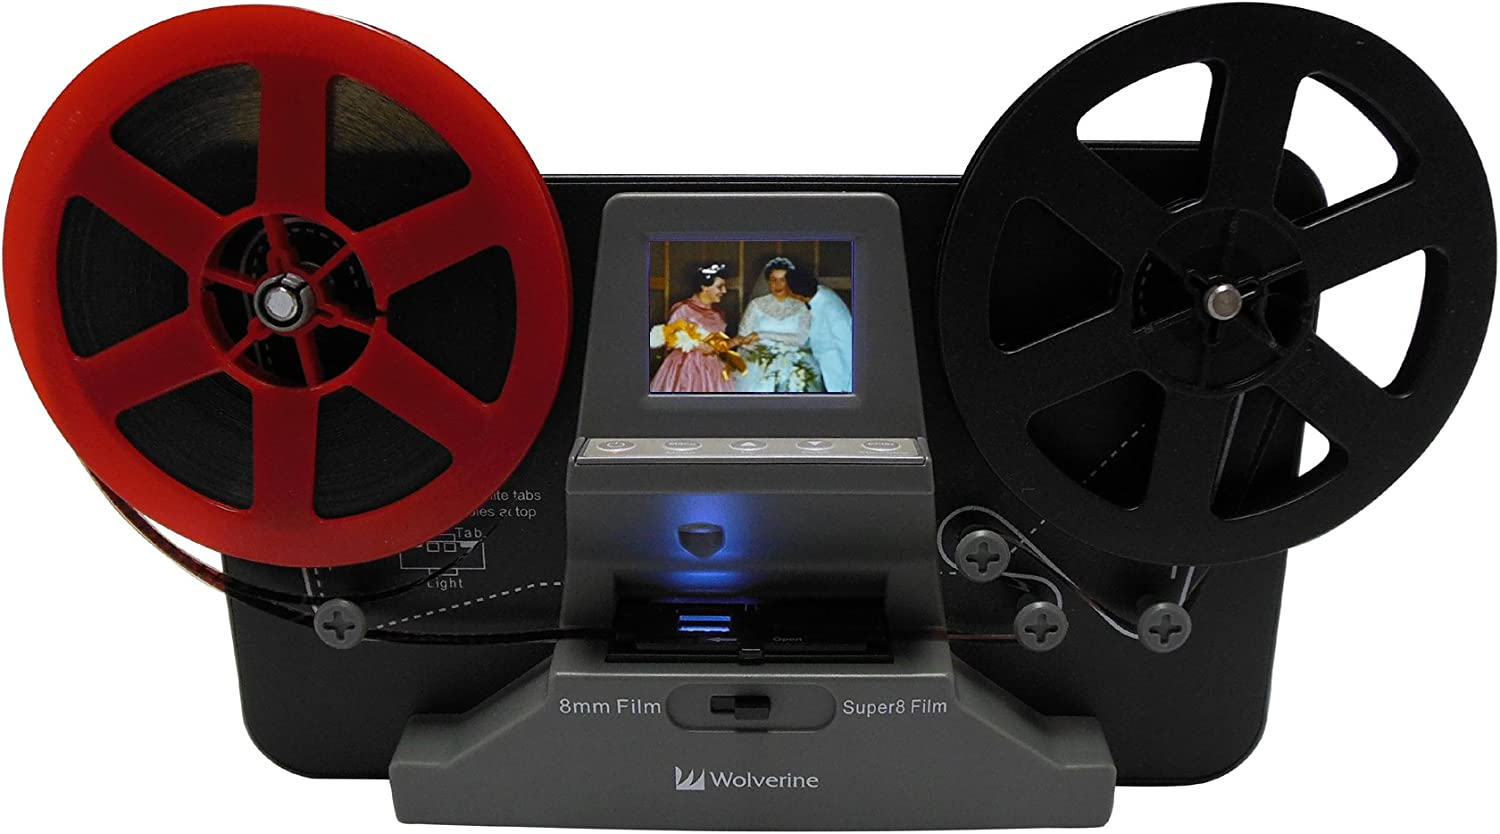 Wolverine 8mm and Super 8 Film Reel Converter Scanner to Convert Film into Digital Videos. Frame by Frame Scanning to Convert 3 inch and 5 inch 8mm Super 8 Film reels into 720P Digital: Camera & Photo